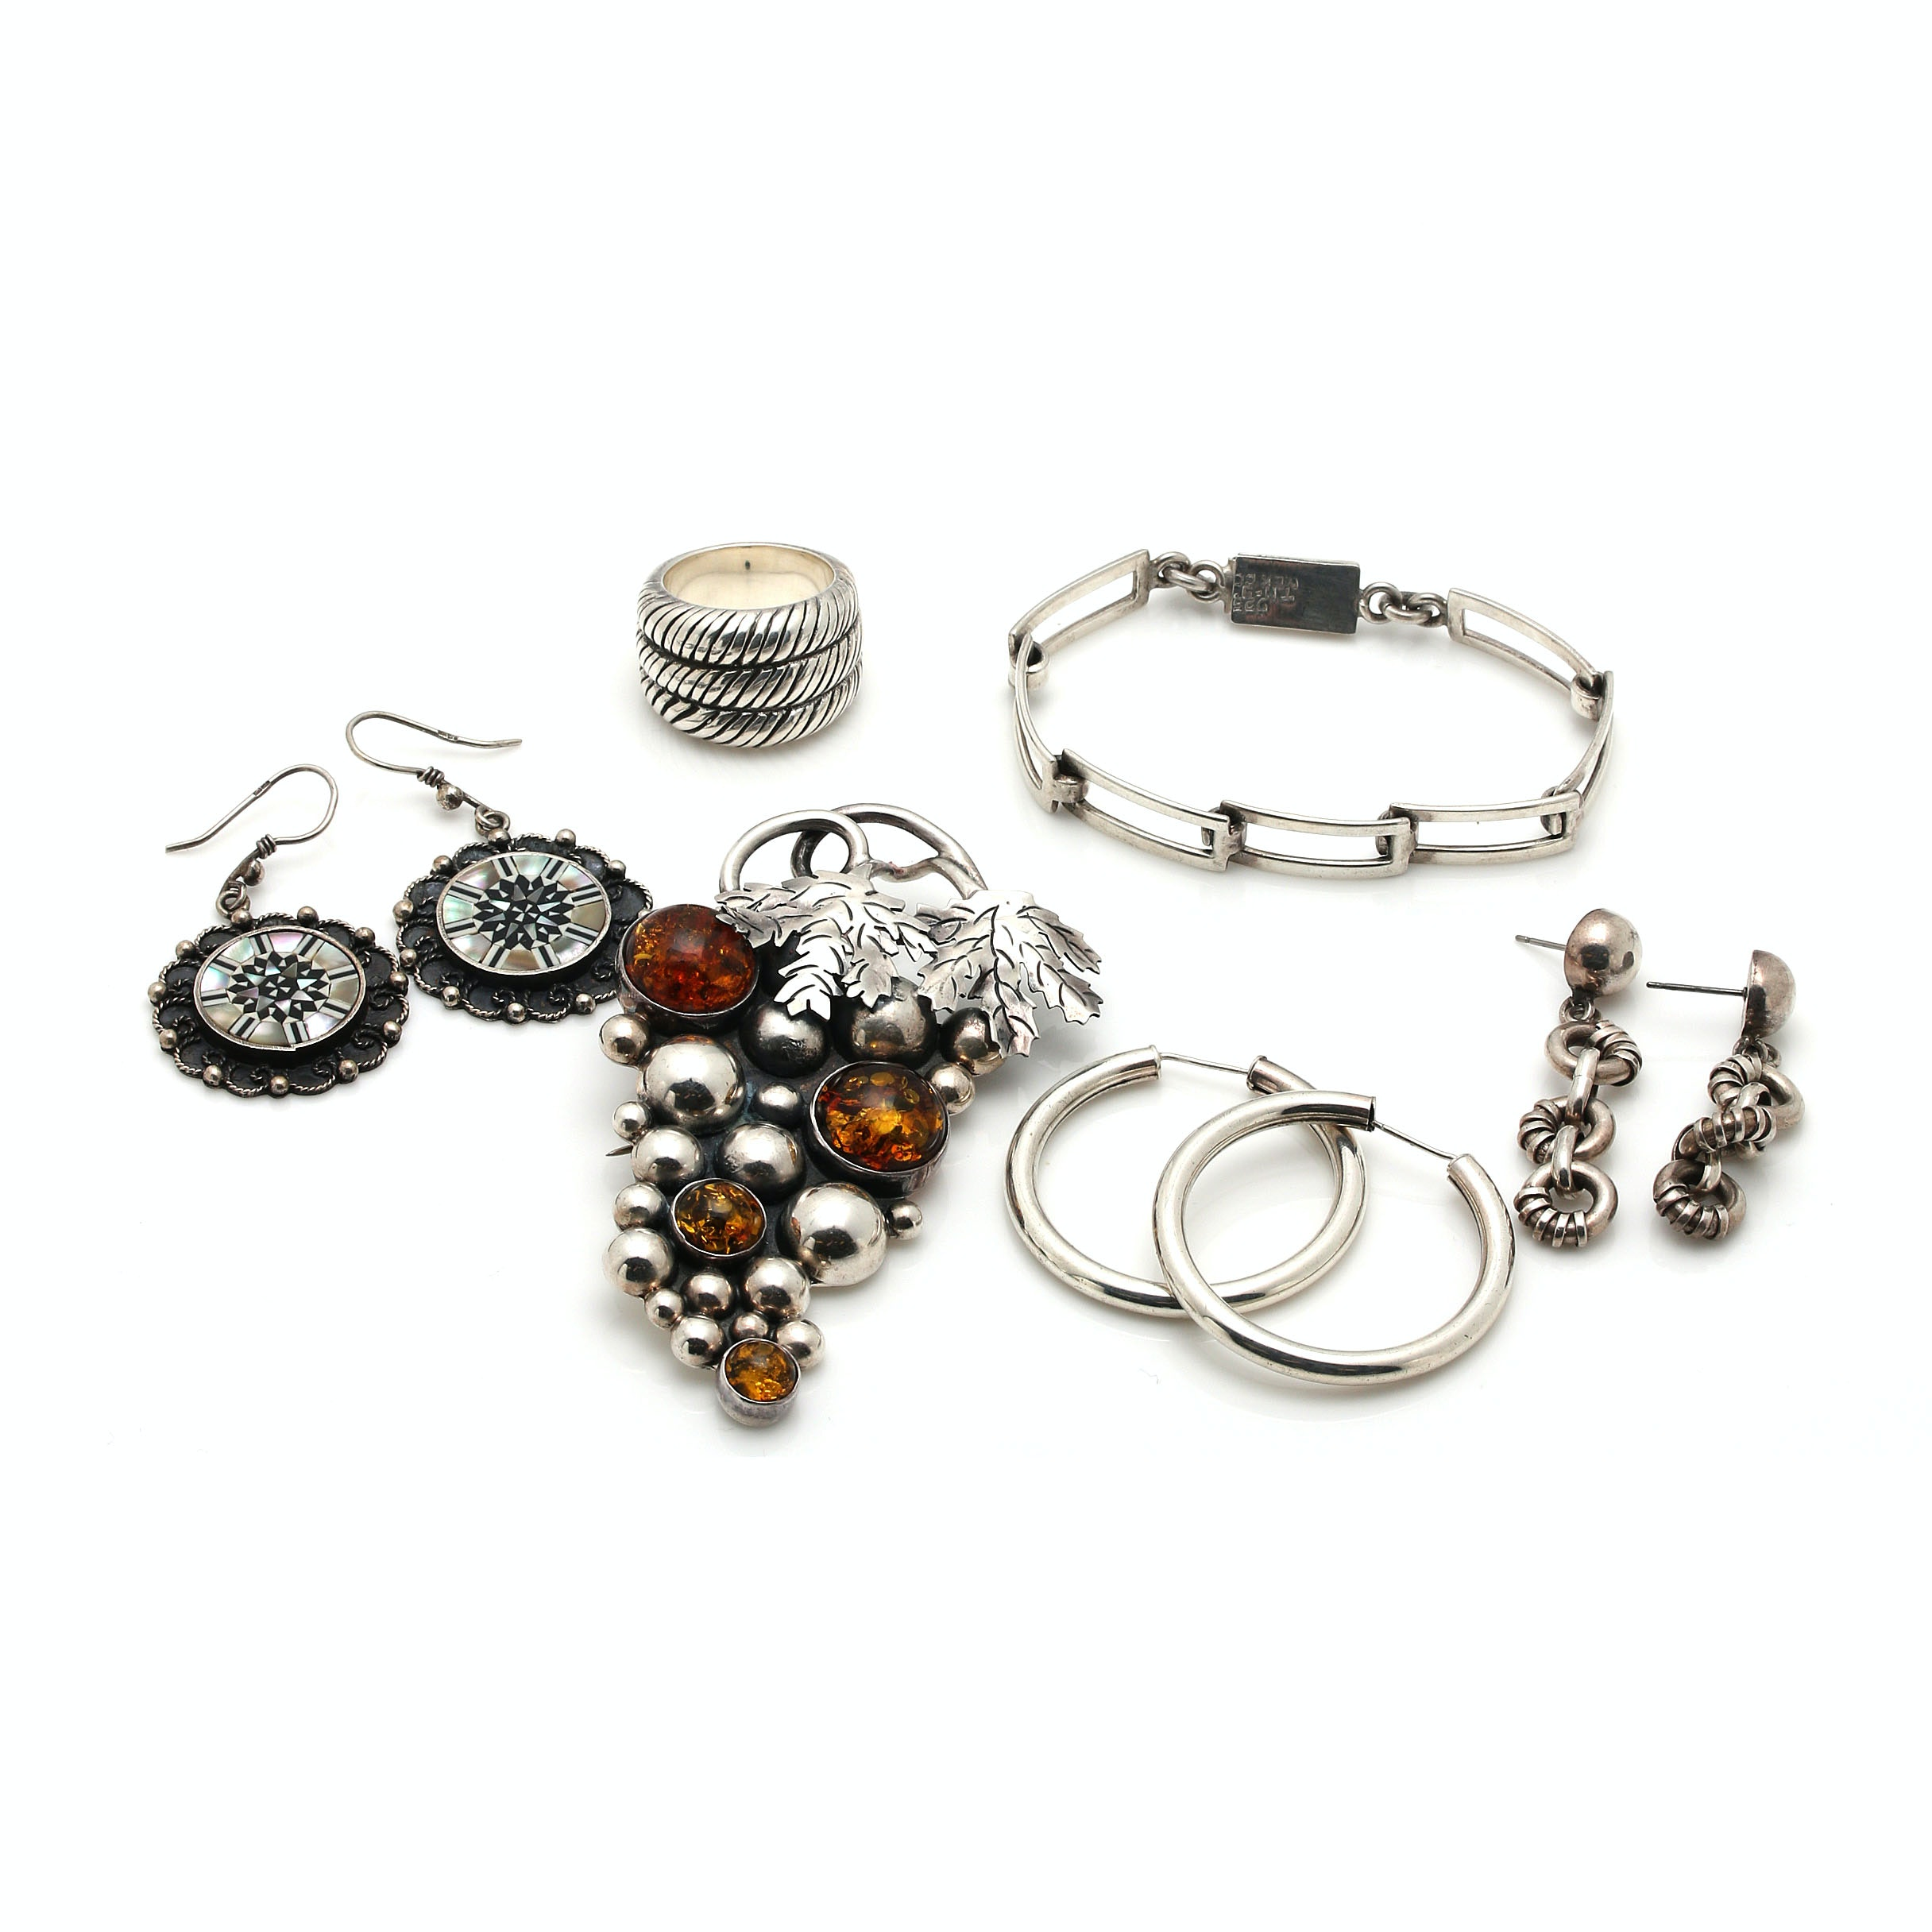 Assortment of Sterling Silver Jewelry Including Amber and Mother of Pearl